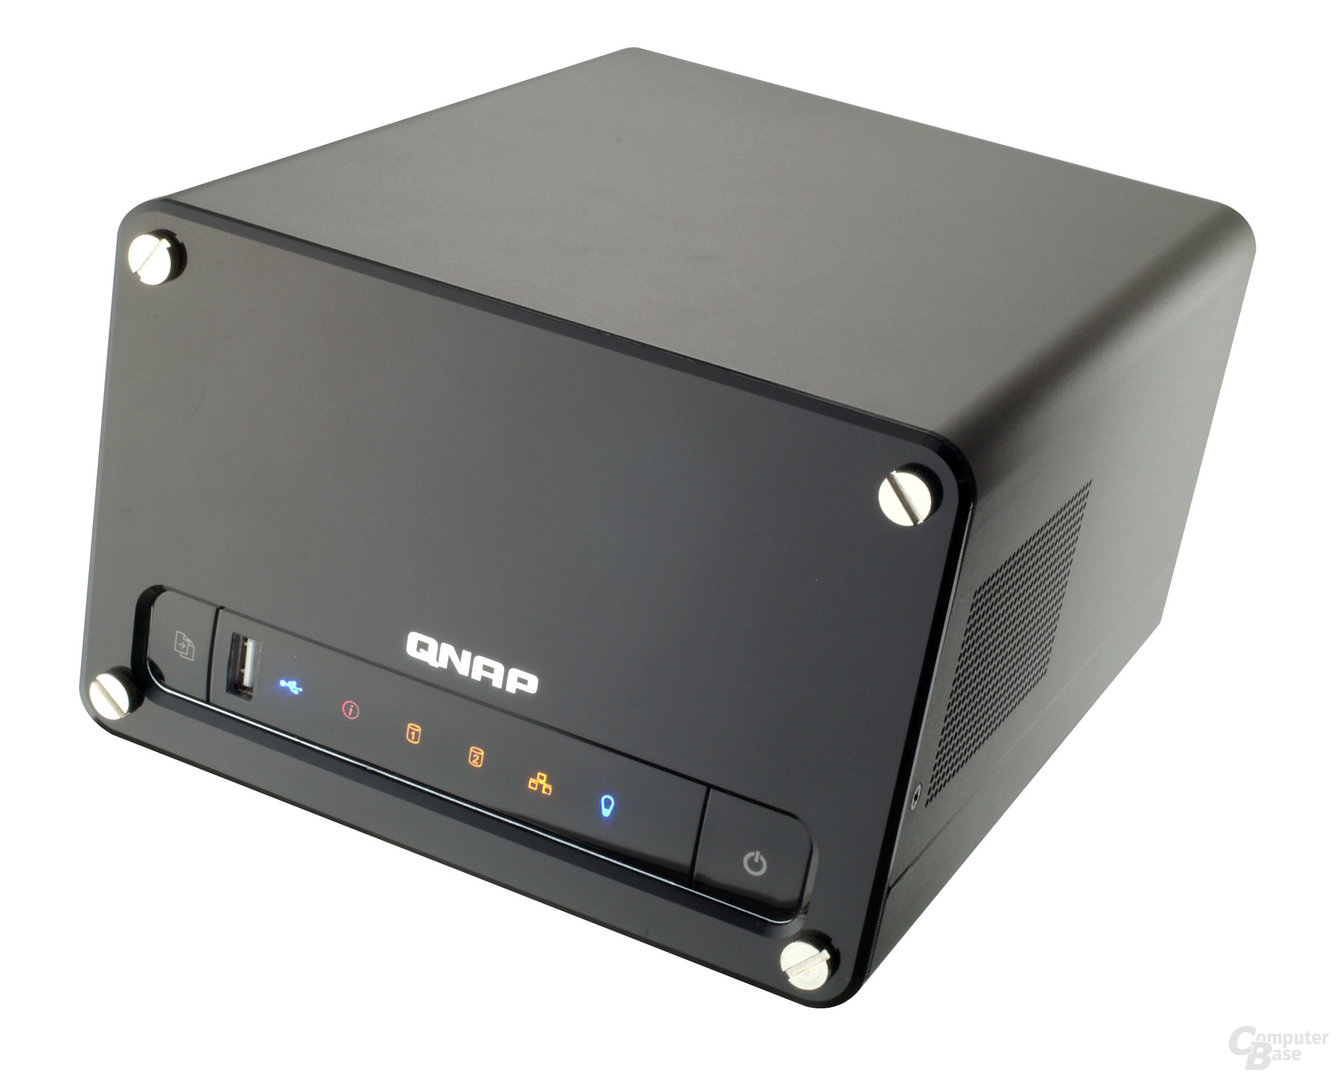 QNAP Turbo Station TS-201